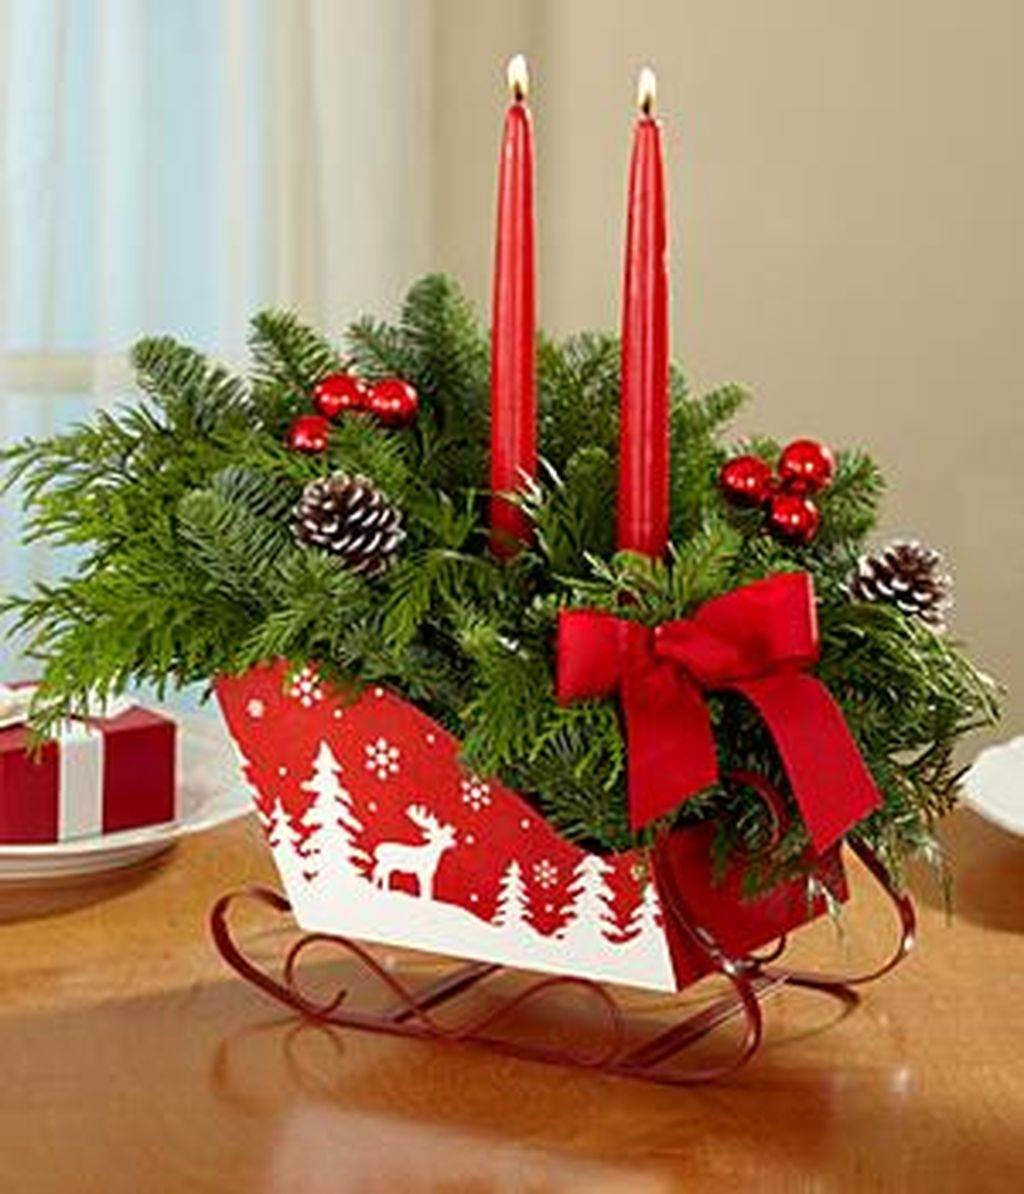 Romantic Christmas Centerpieces Ideas With Candles 10